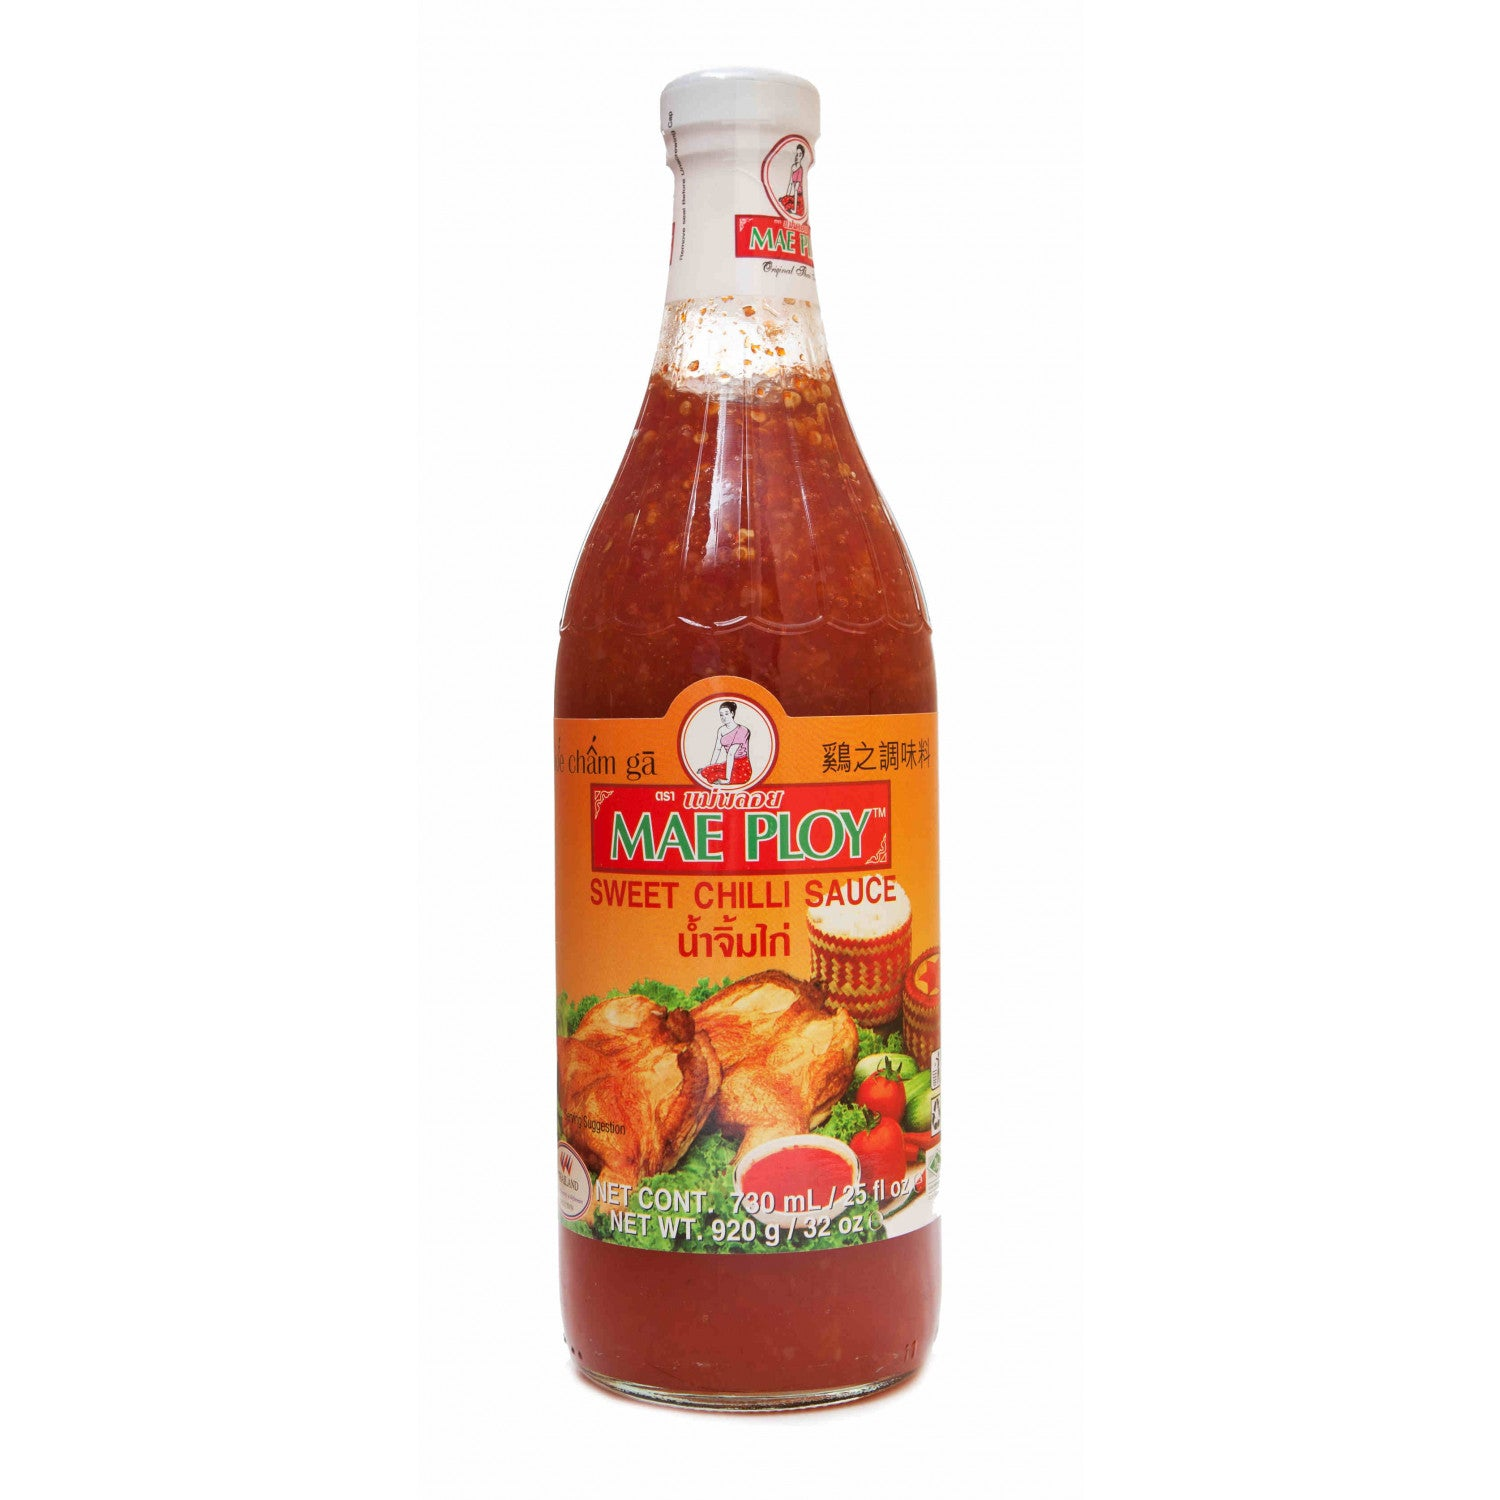 Sweet Chilli Sauce 730ml Bottle By Mae Ploy Thai Food Online Authentic Thai Supermarket